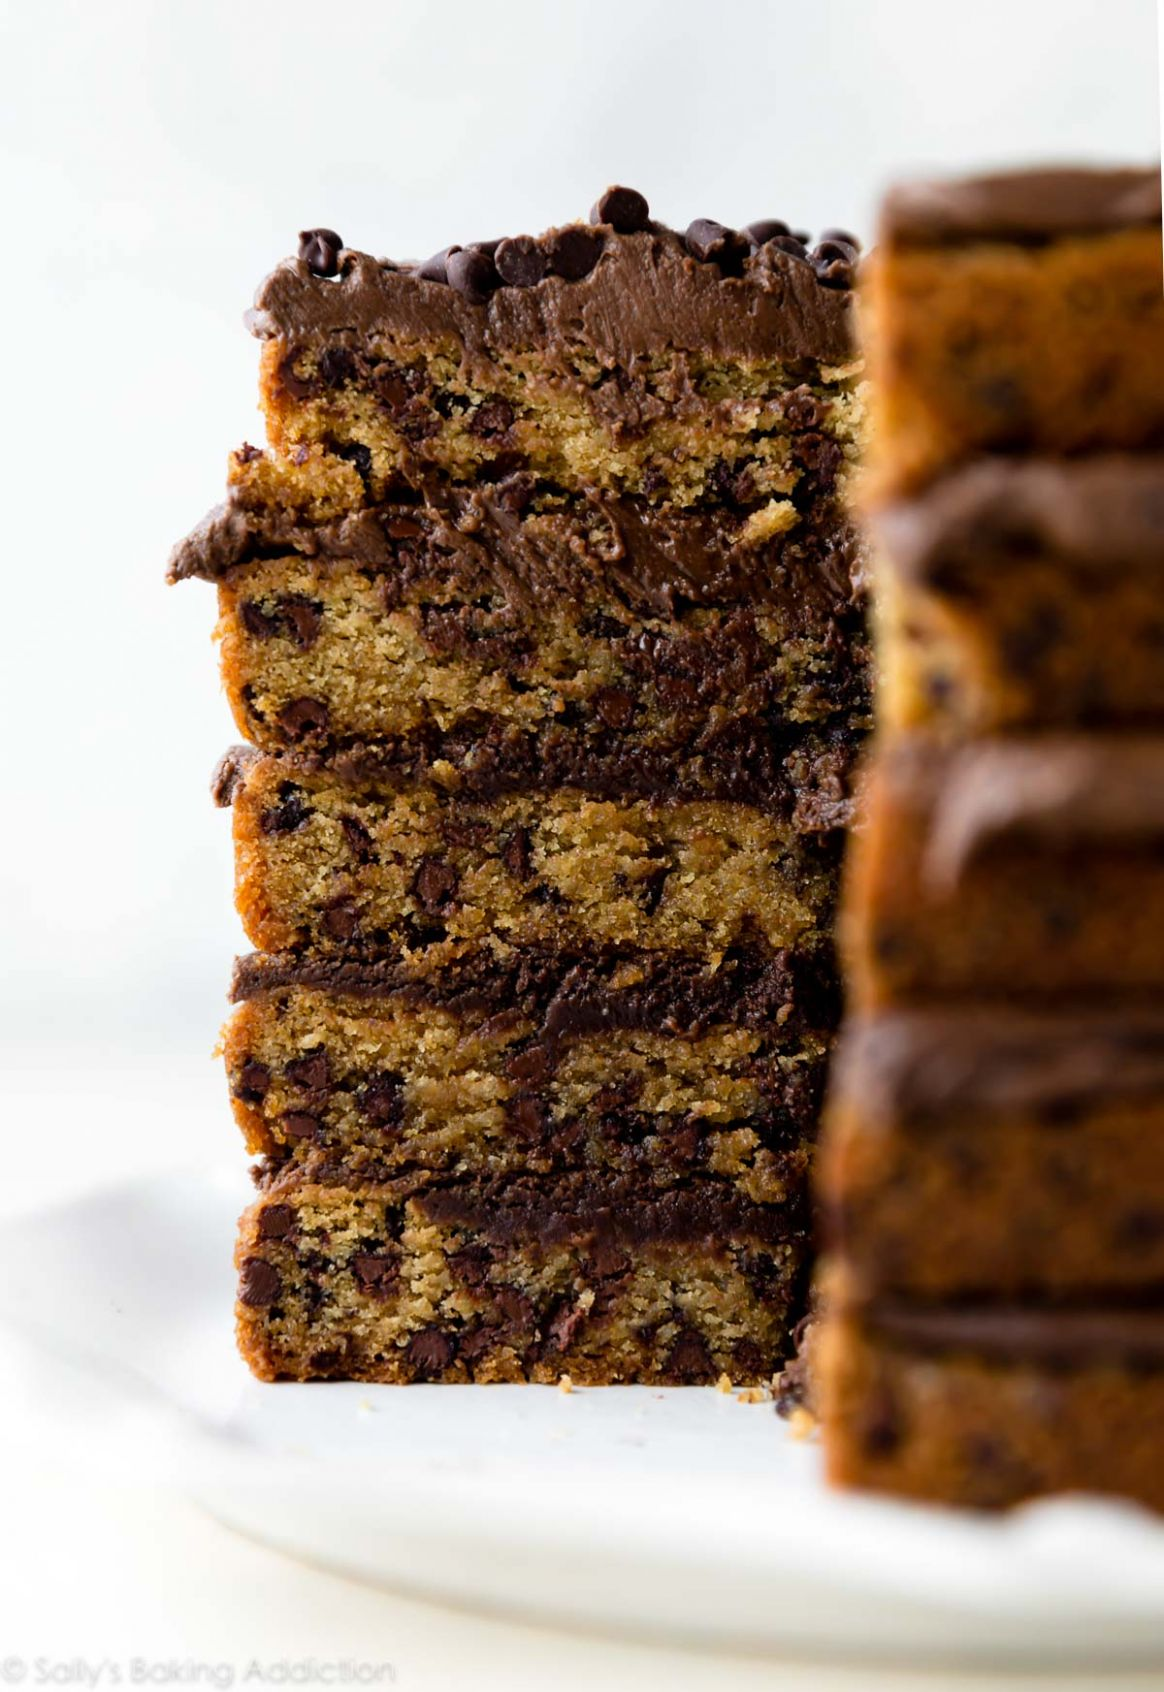 Chocolate Chip Cookie Layer Cake - Recipes Cake With Chocolate Chips